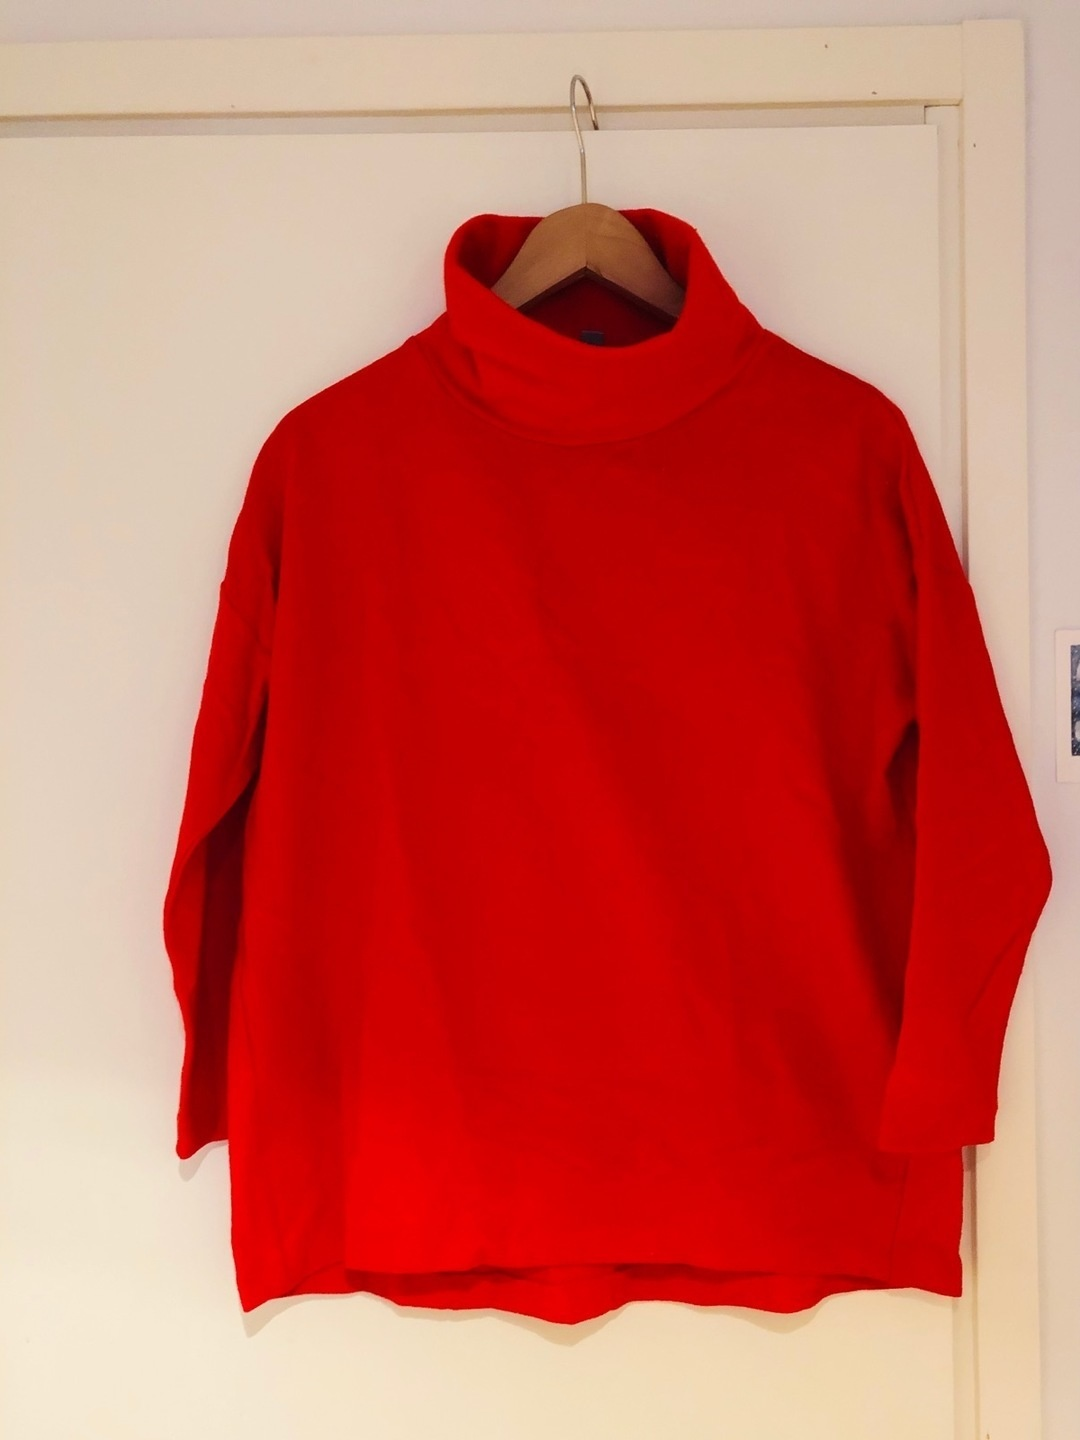 Women's jumpers & cardigans - COS photo 1